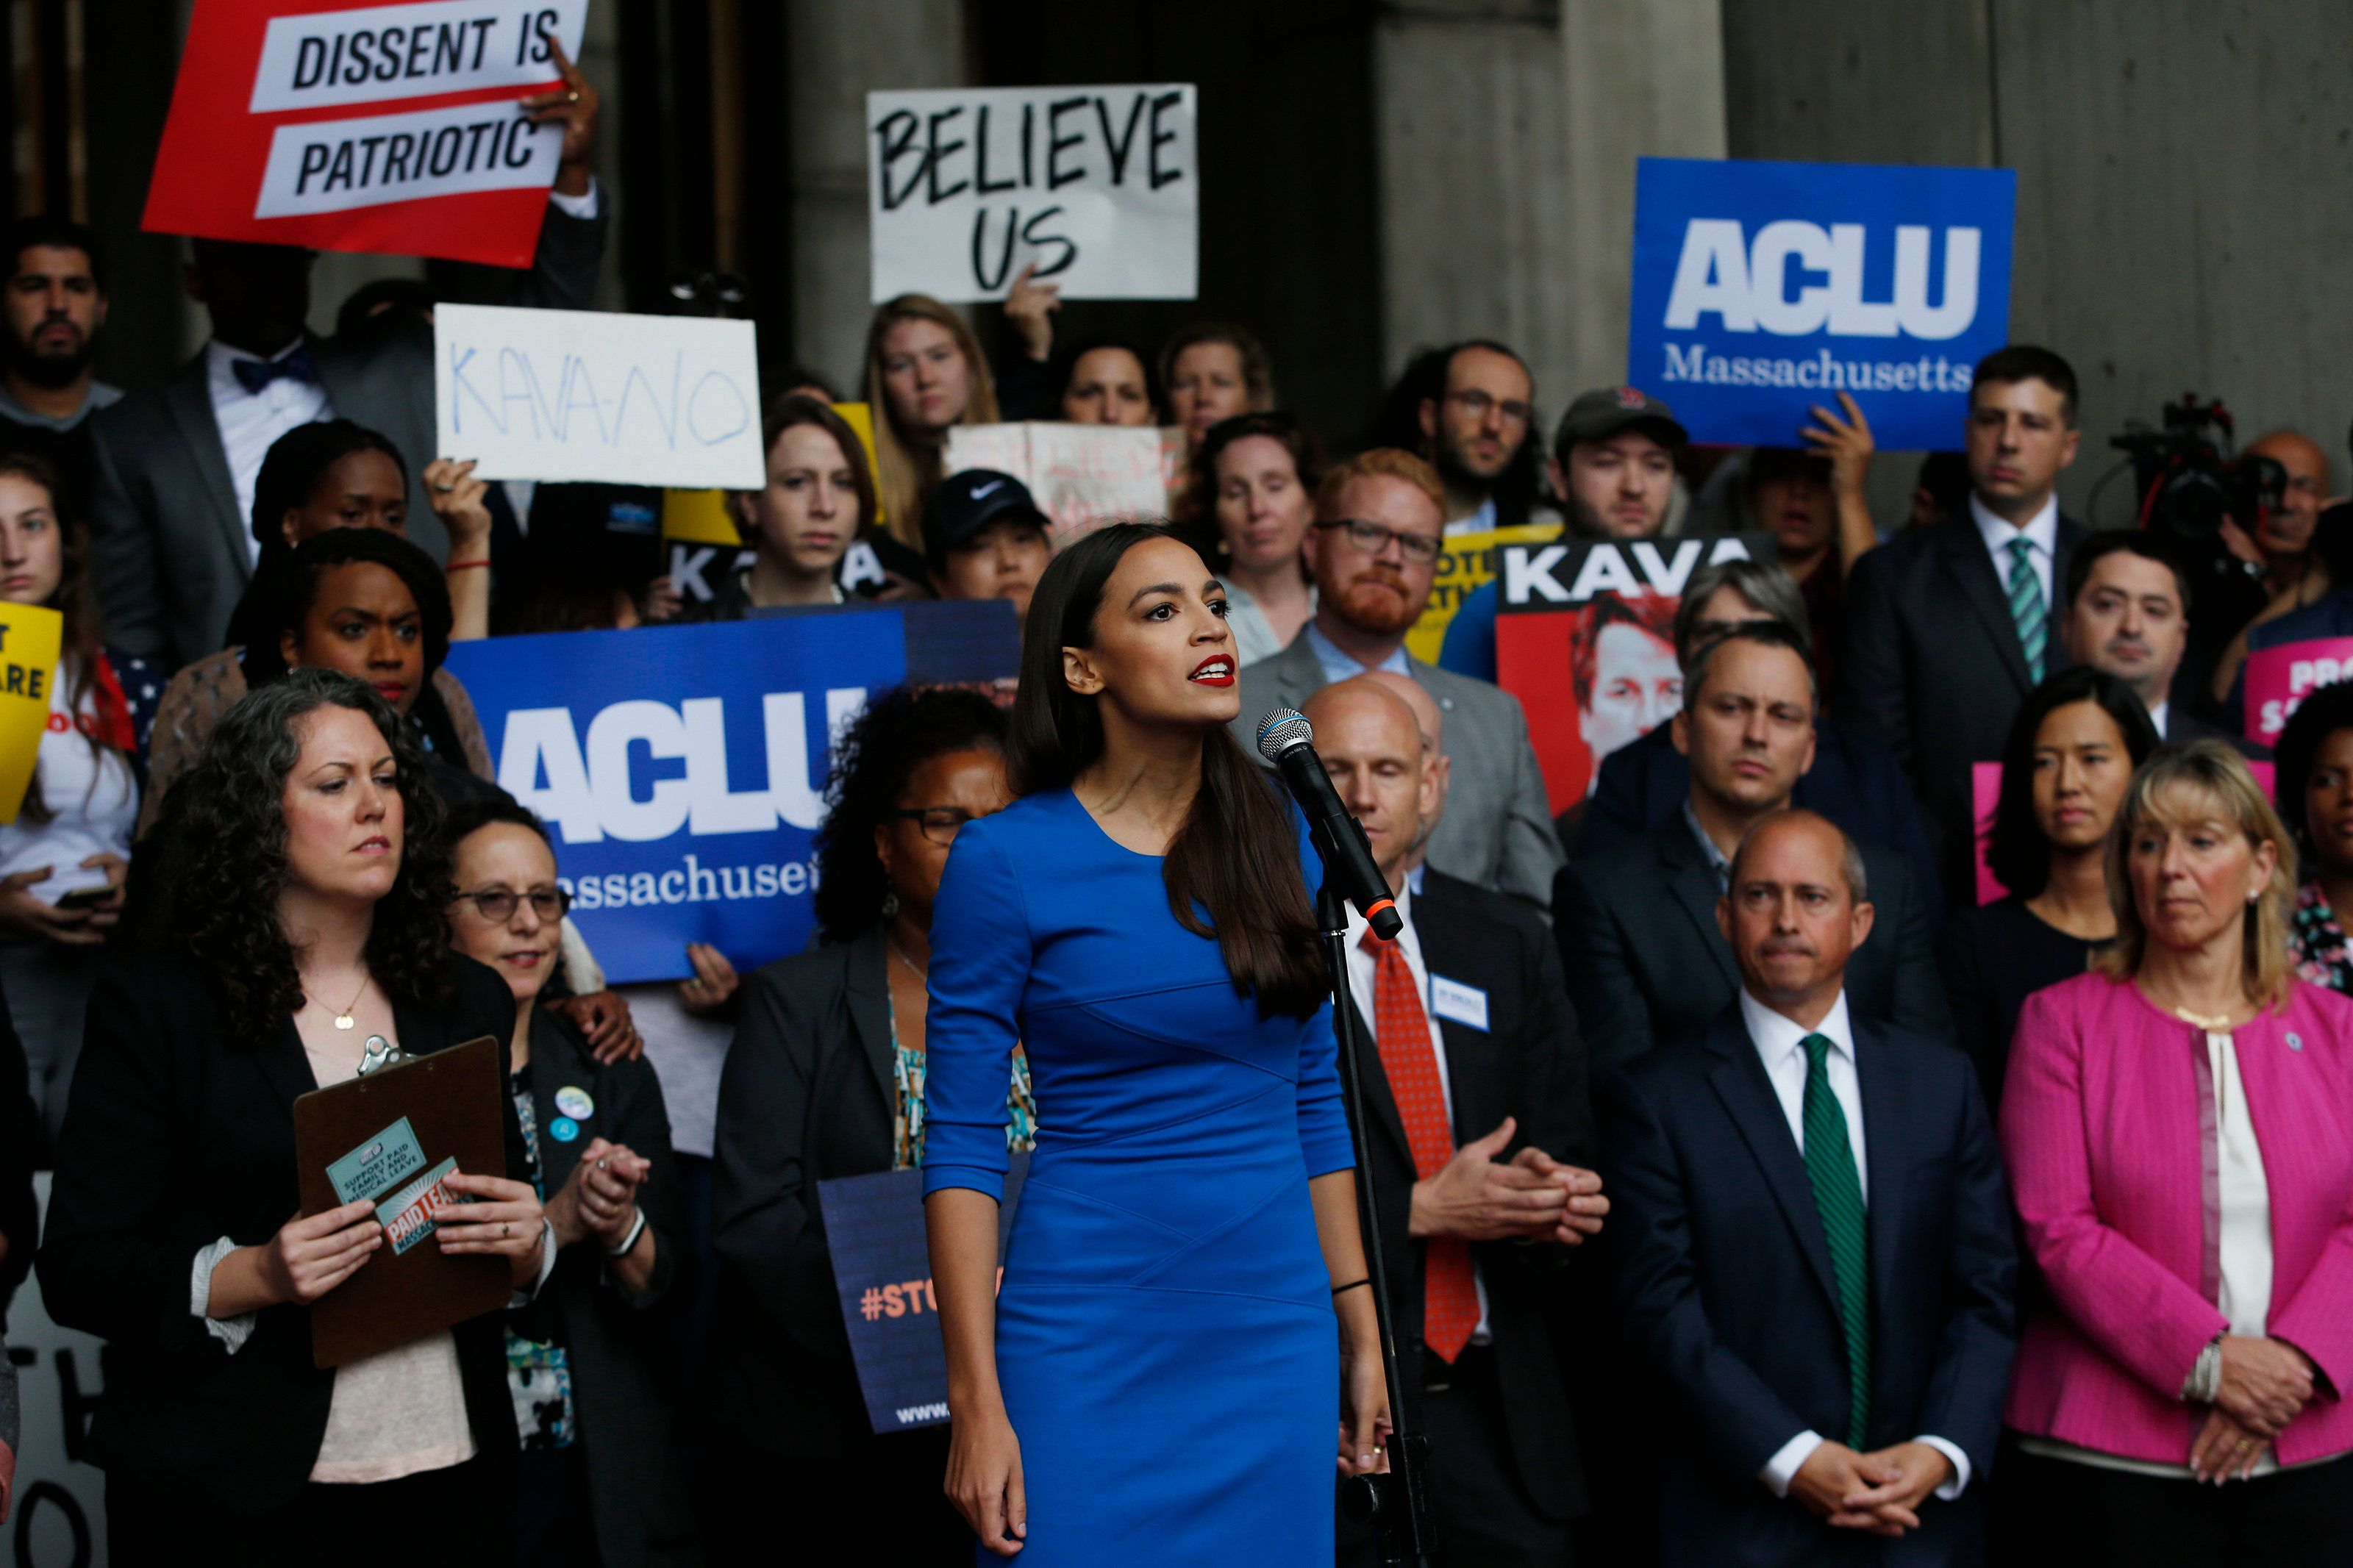 Alexandria Ocasio-Cortez to be youngest woman ever elected to Congress